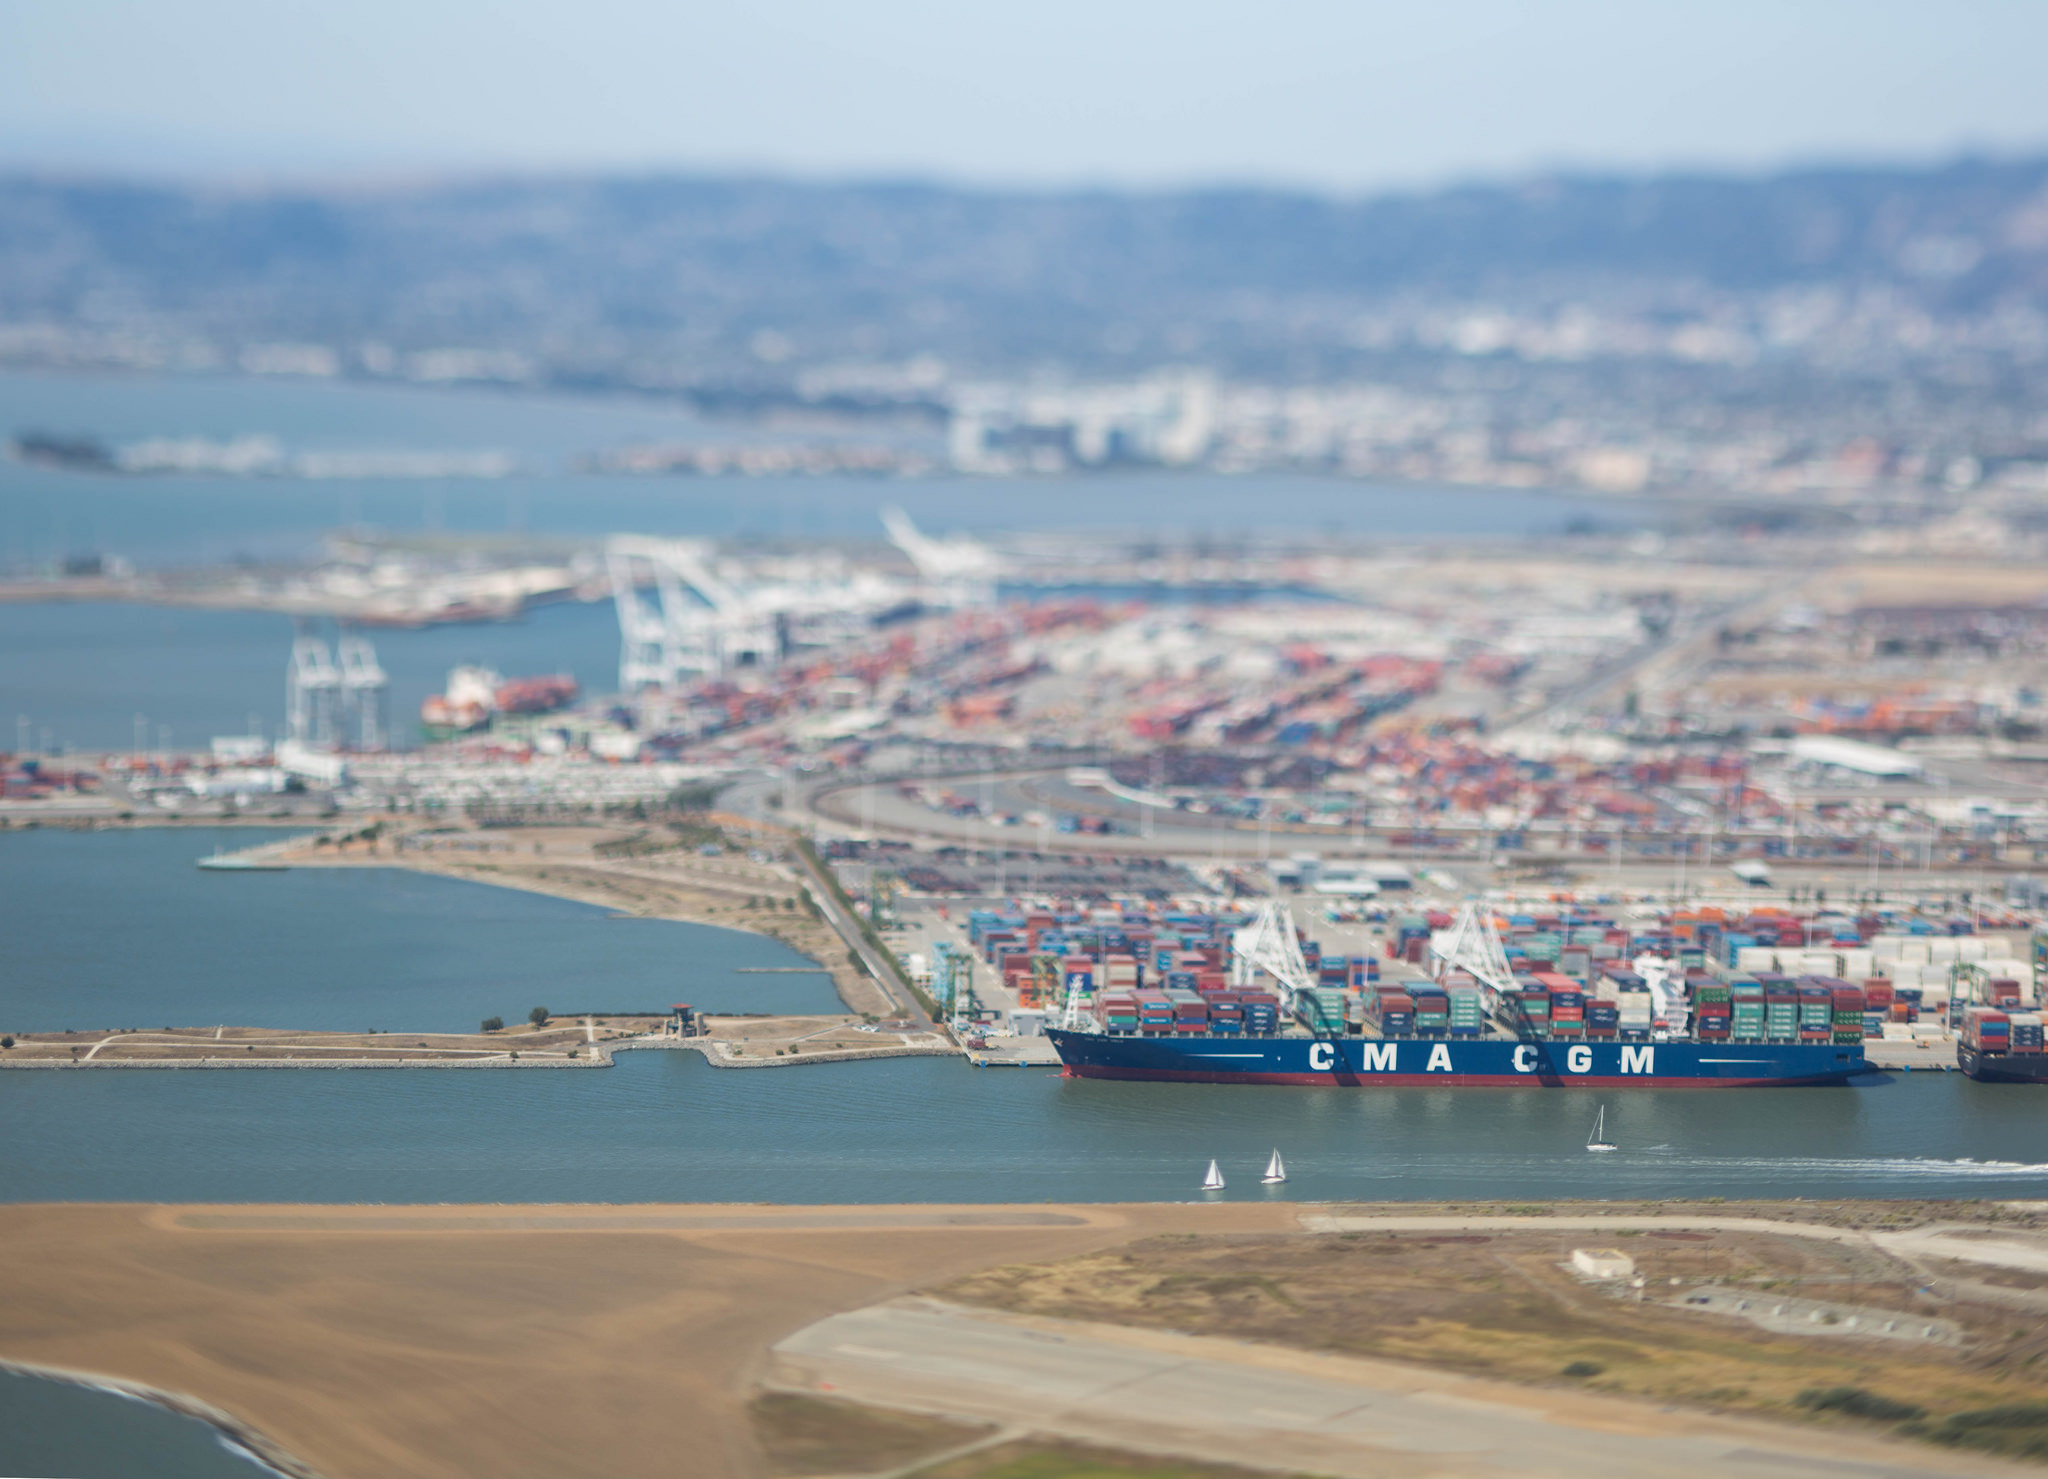 CMA CGM Logistics, Port of Oakland